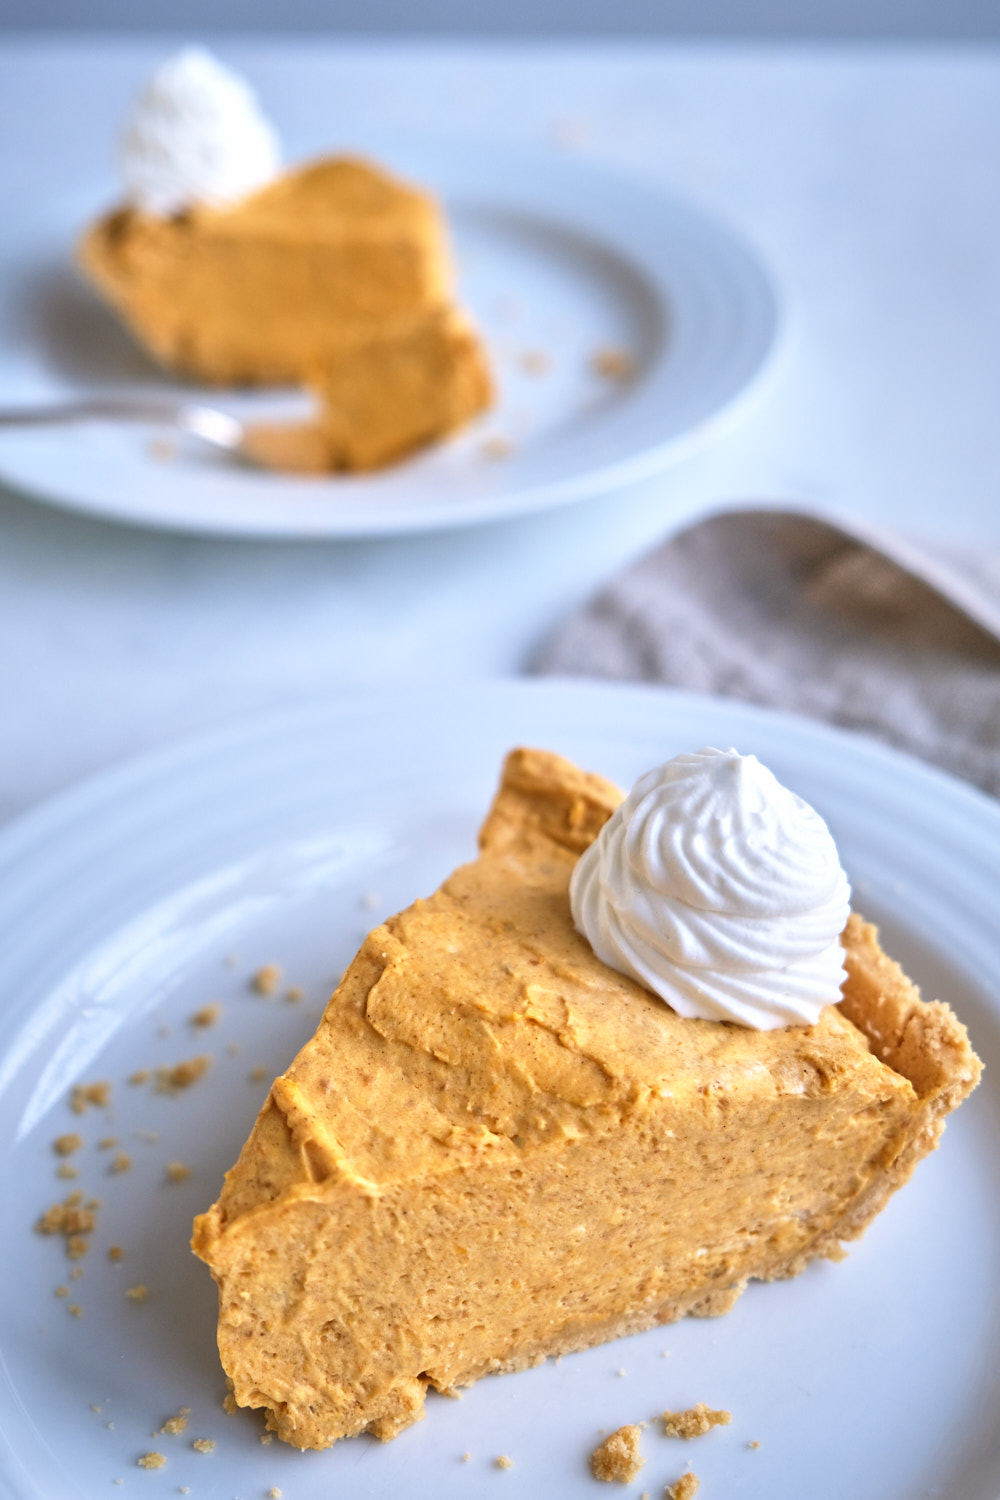 A slice of pumpkin cream pie on a plate with whipped cream.